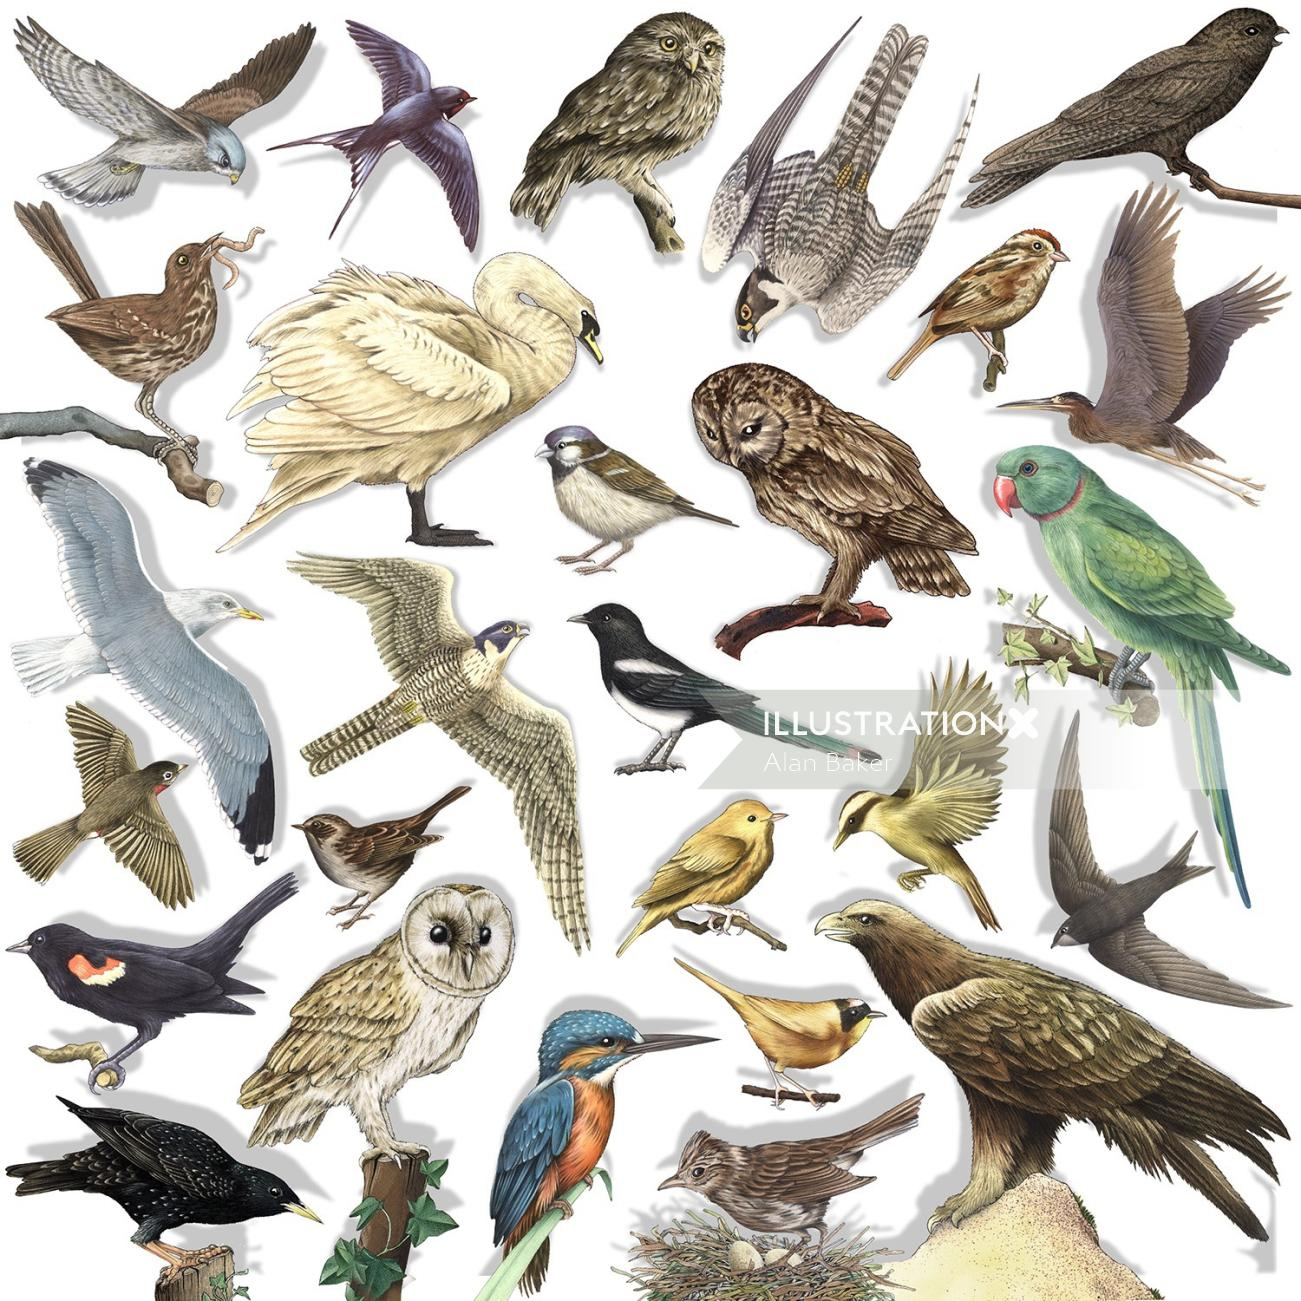 Birds illustration by Alan Baker